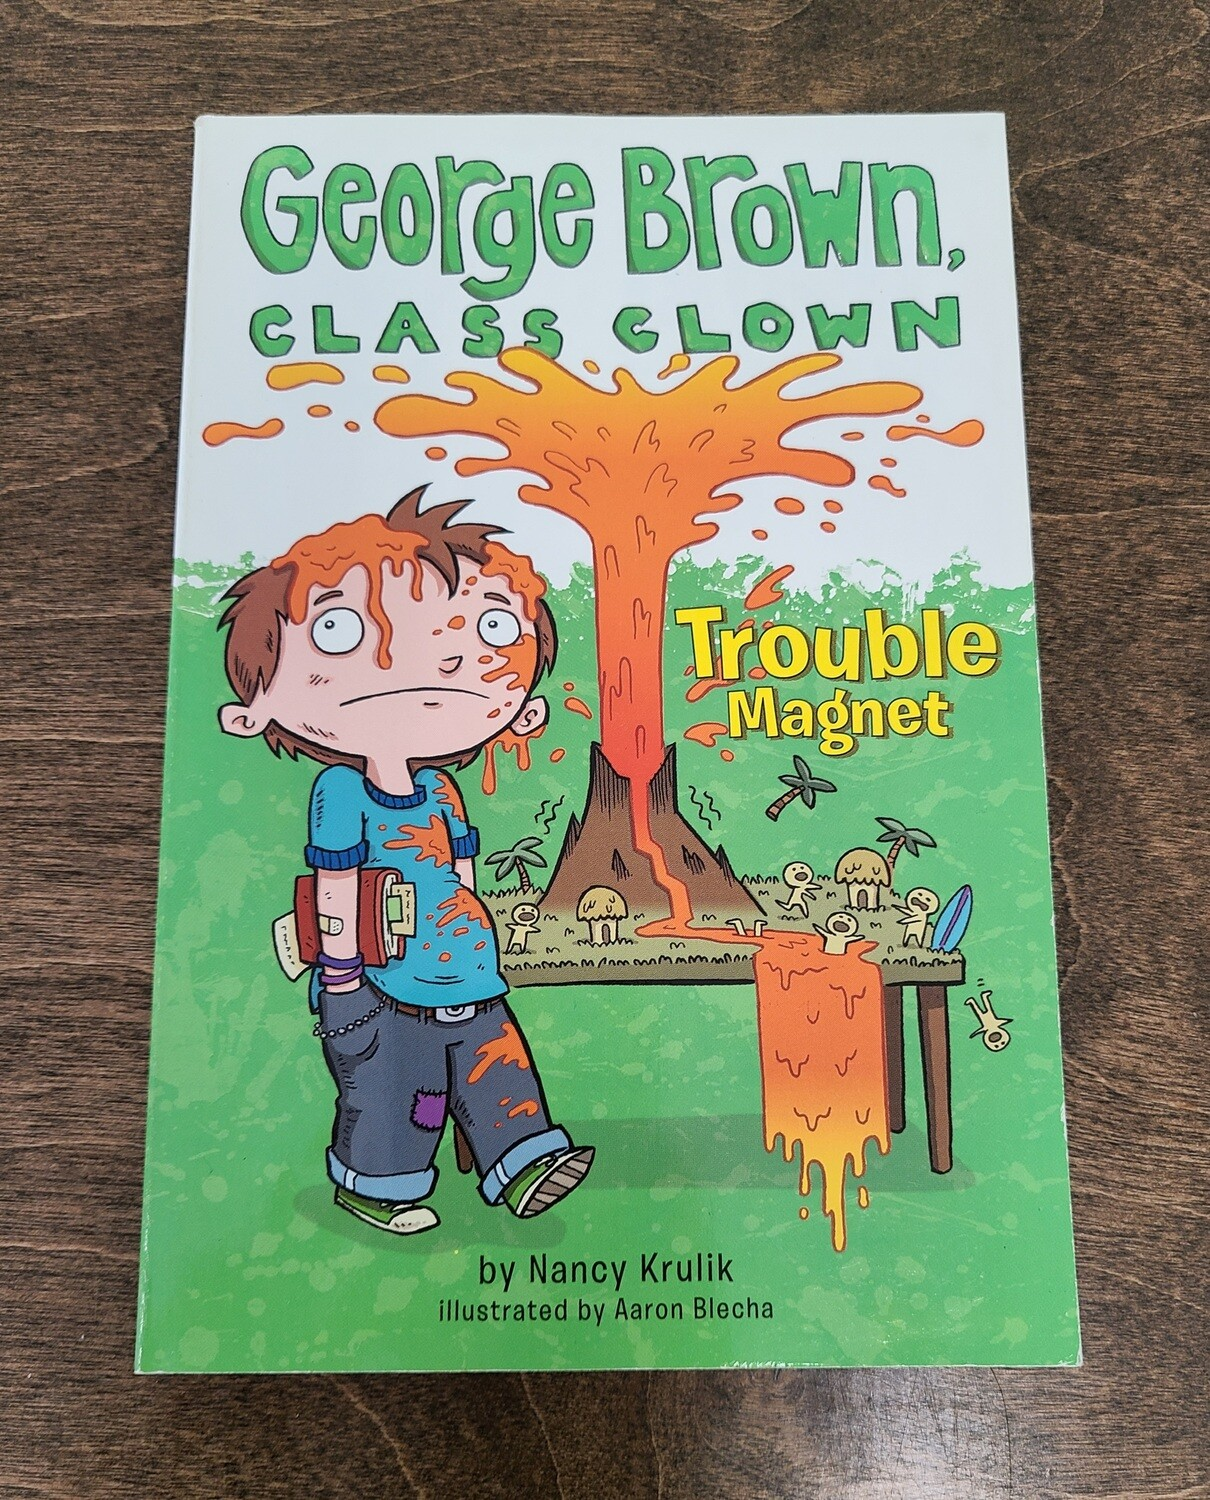 George Brown, Class Clown: Trouble Magnet by Nancy Krulik and Aaron Blecha